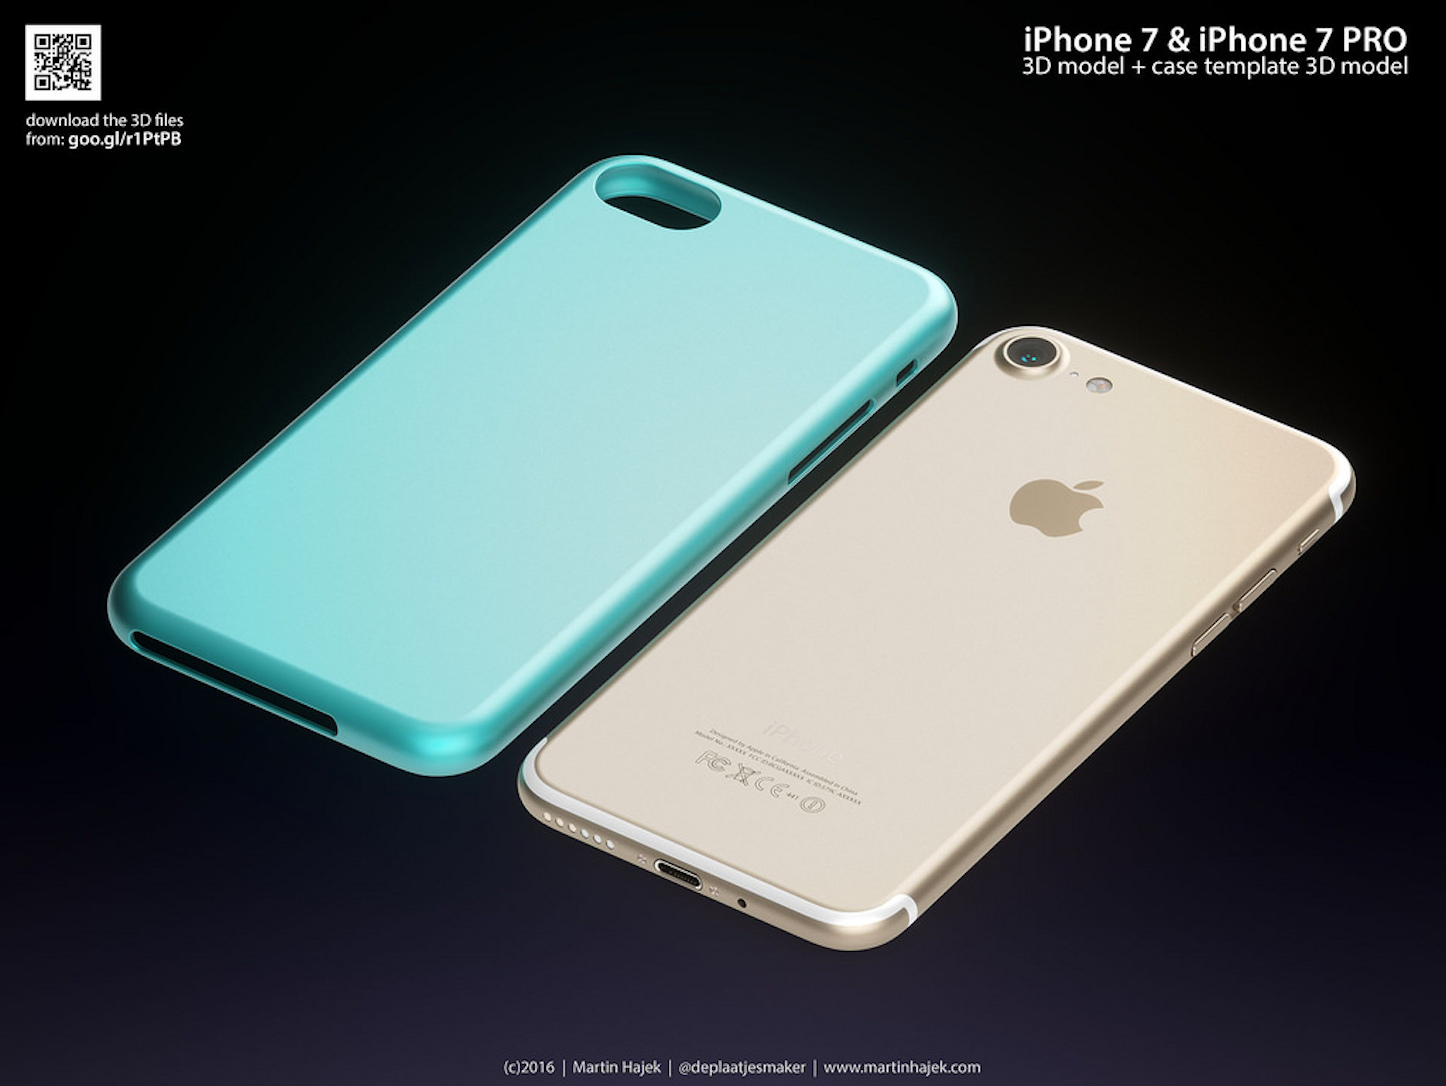 iphone-7-pro-concept-image-2.jpg